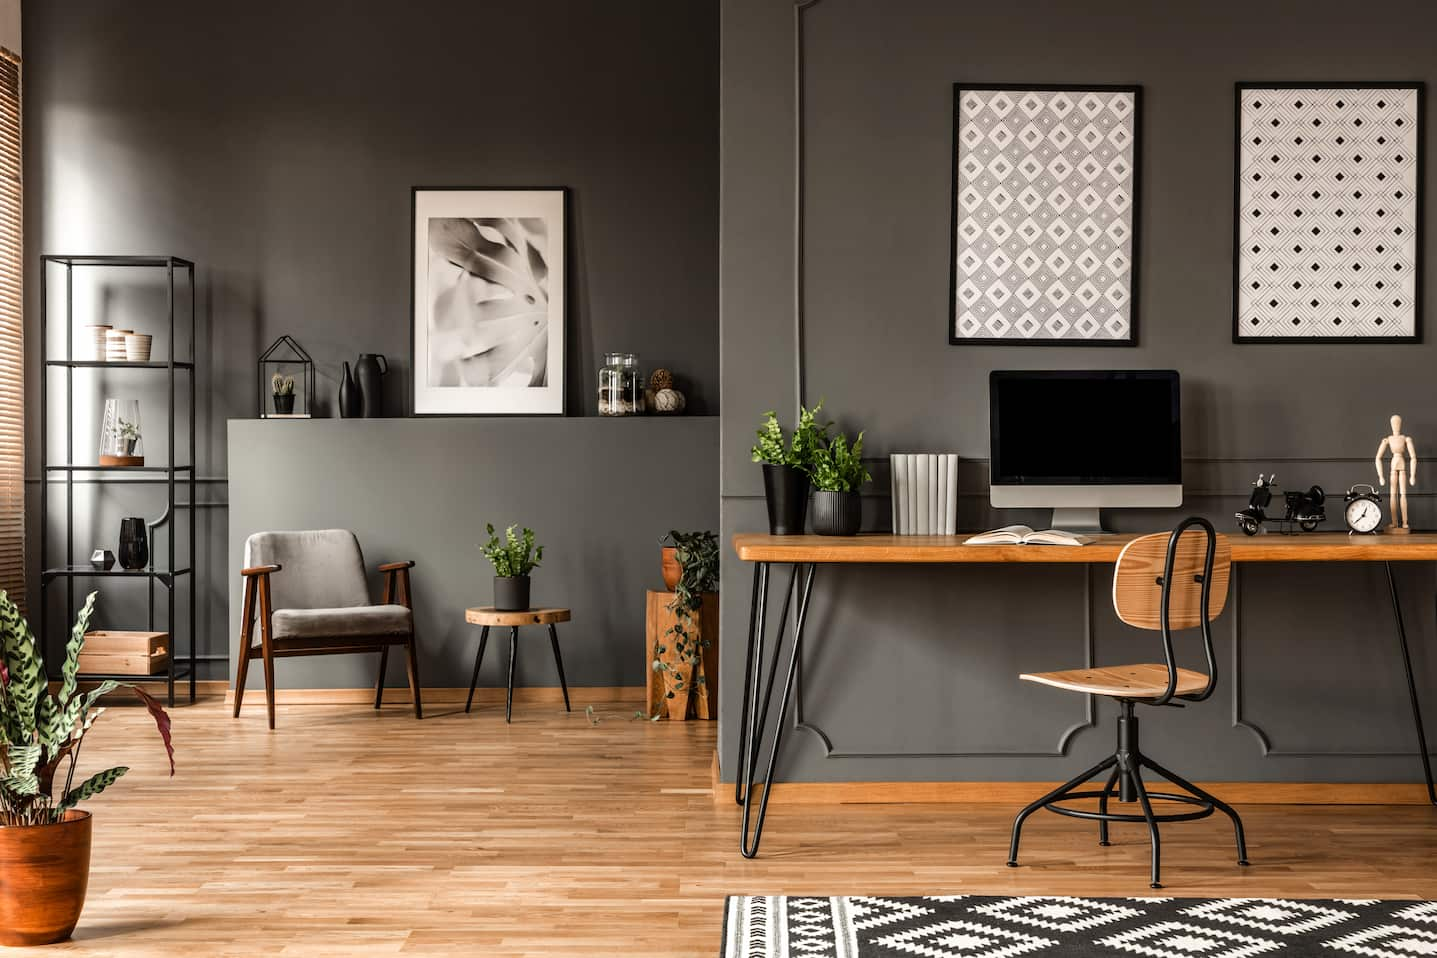 How do I optimize my home office